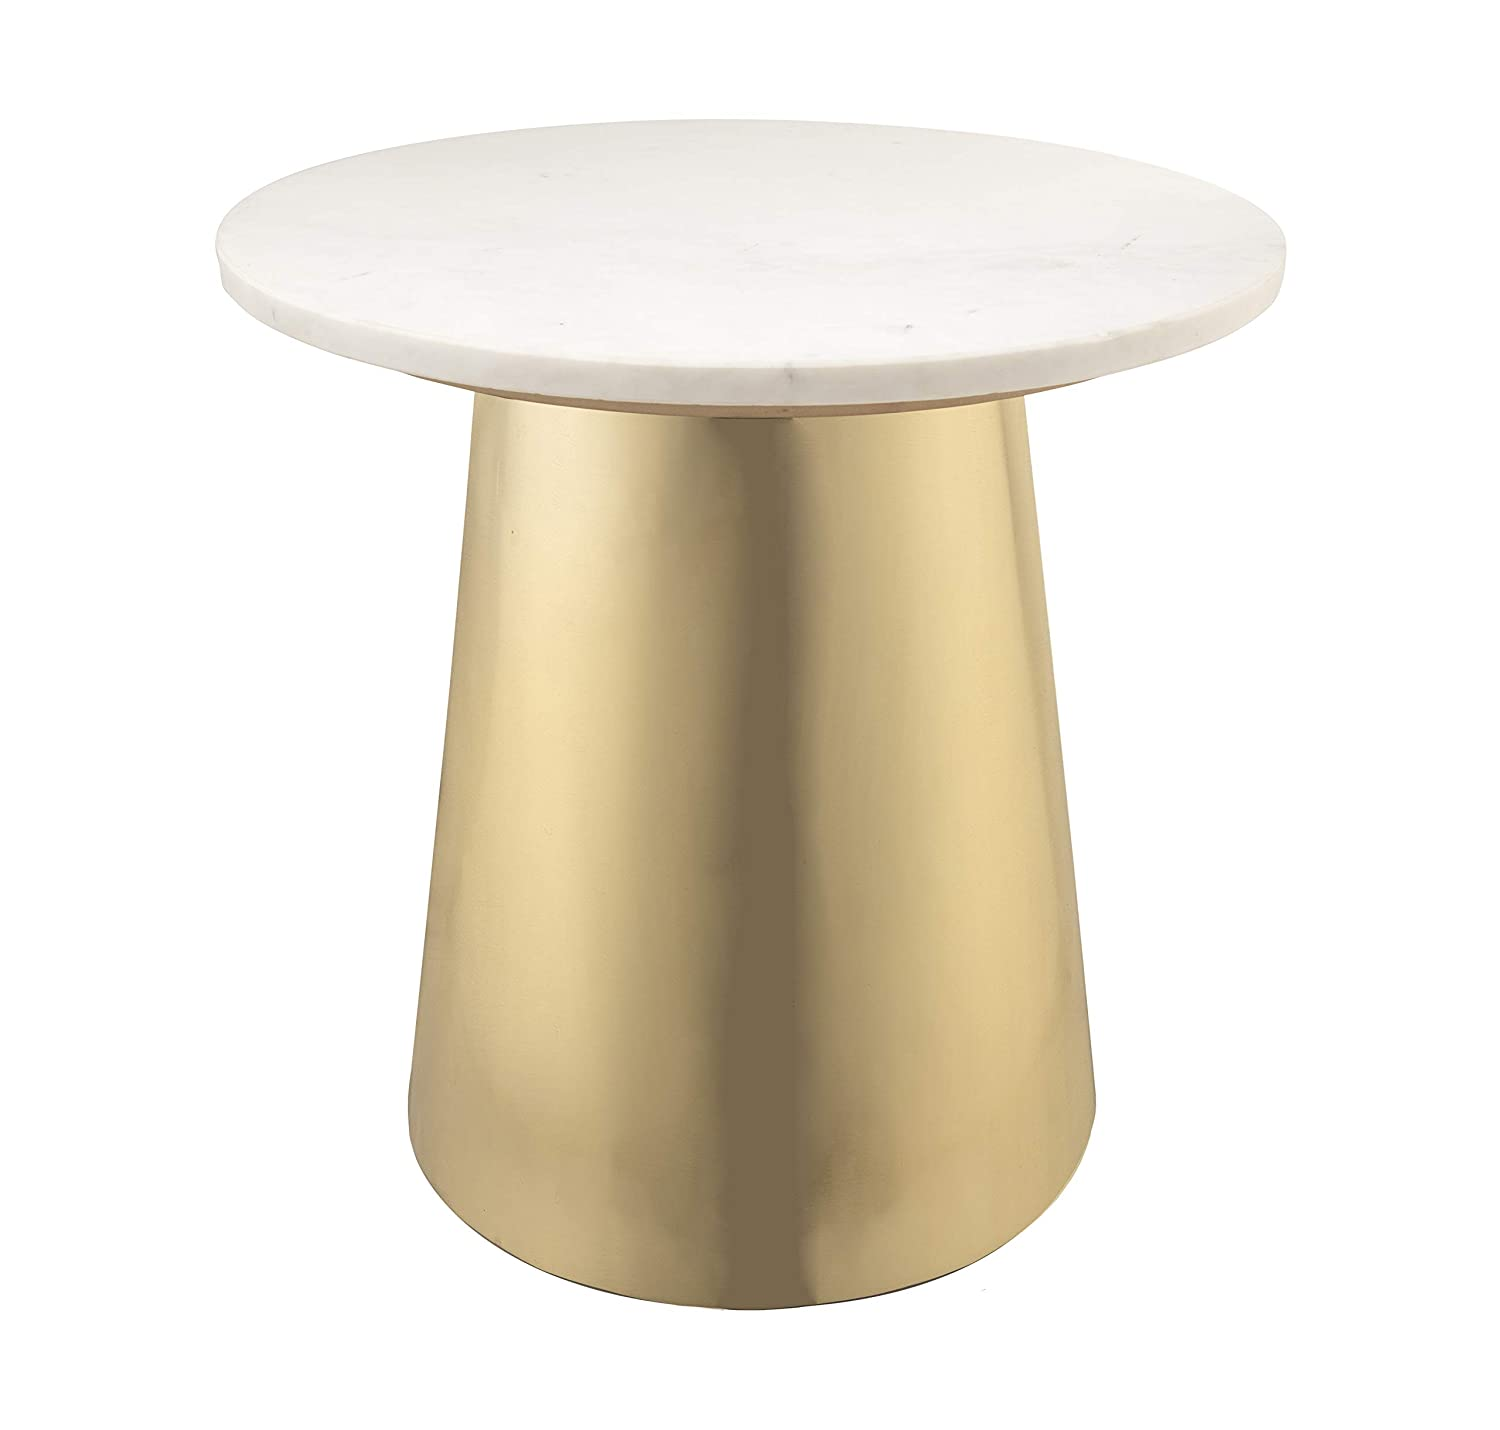 Amazon com tov furniture tov oc18135 bleeker modern marble side table 20 gold white kitchen dining